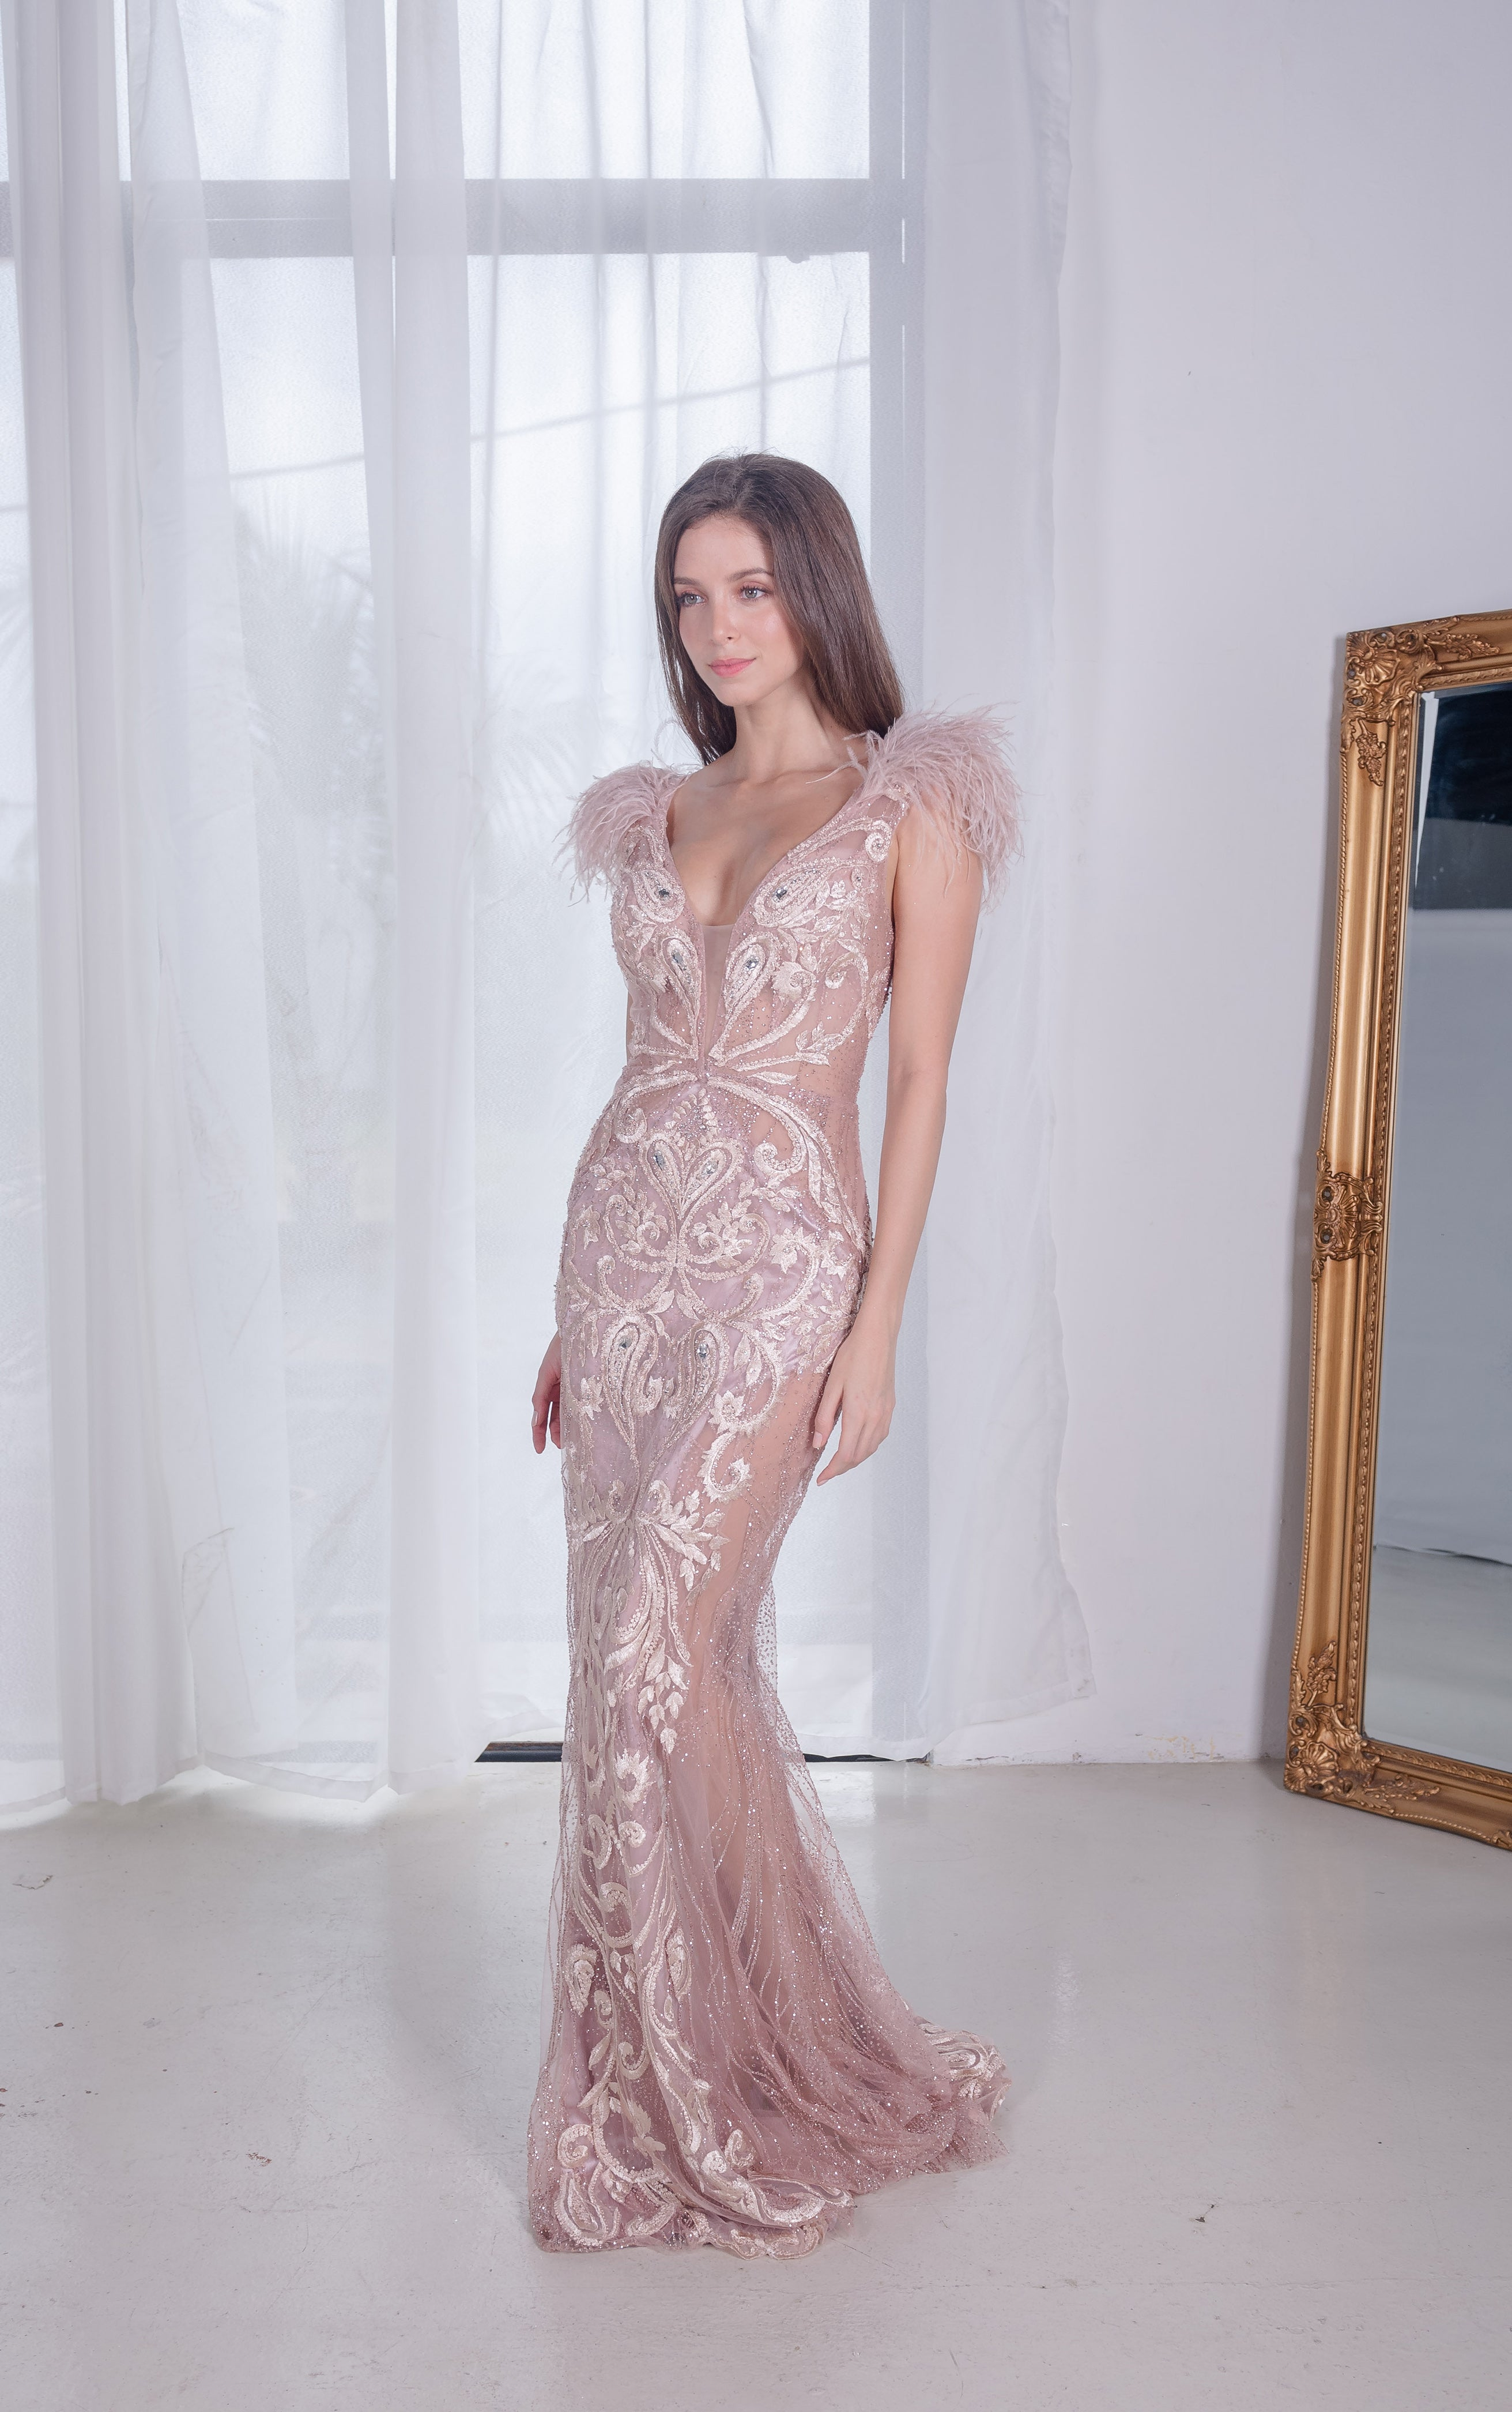 PS Soleil Furry Rose Gold Gown